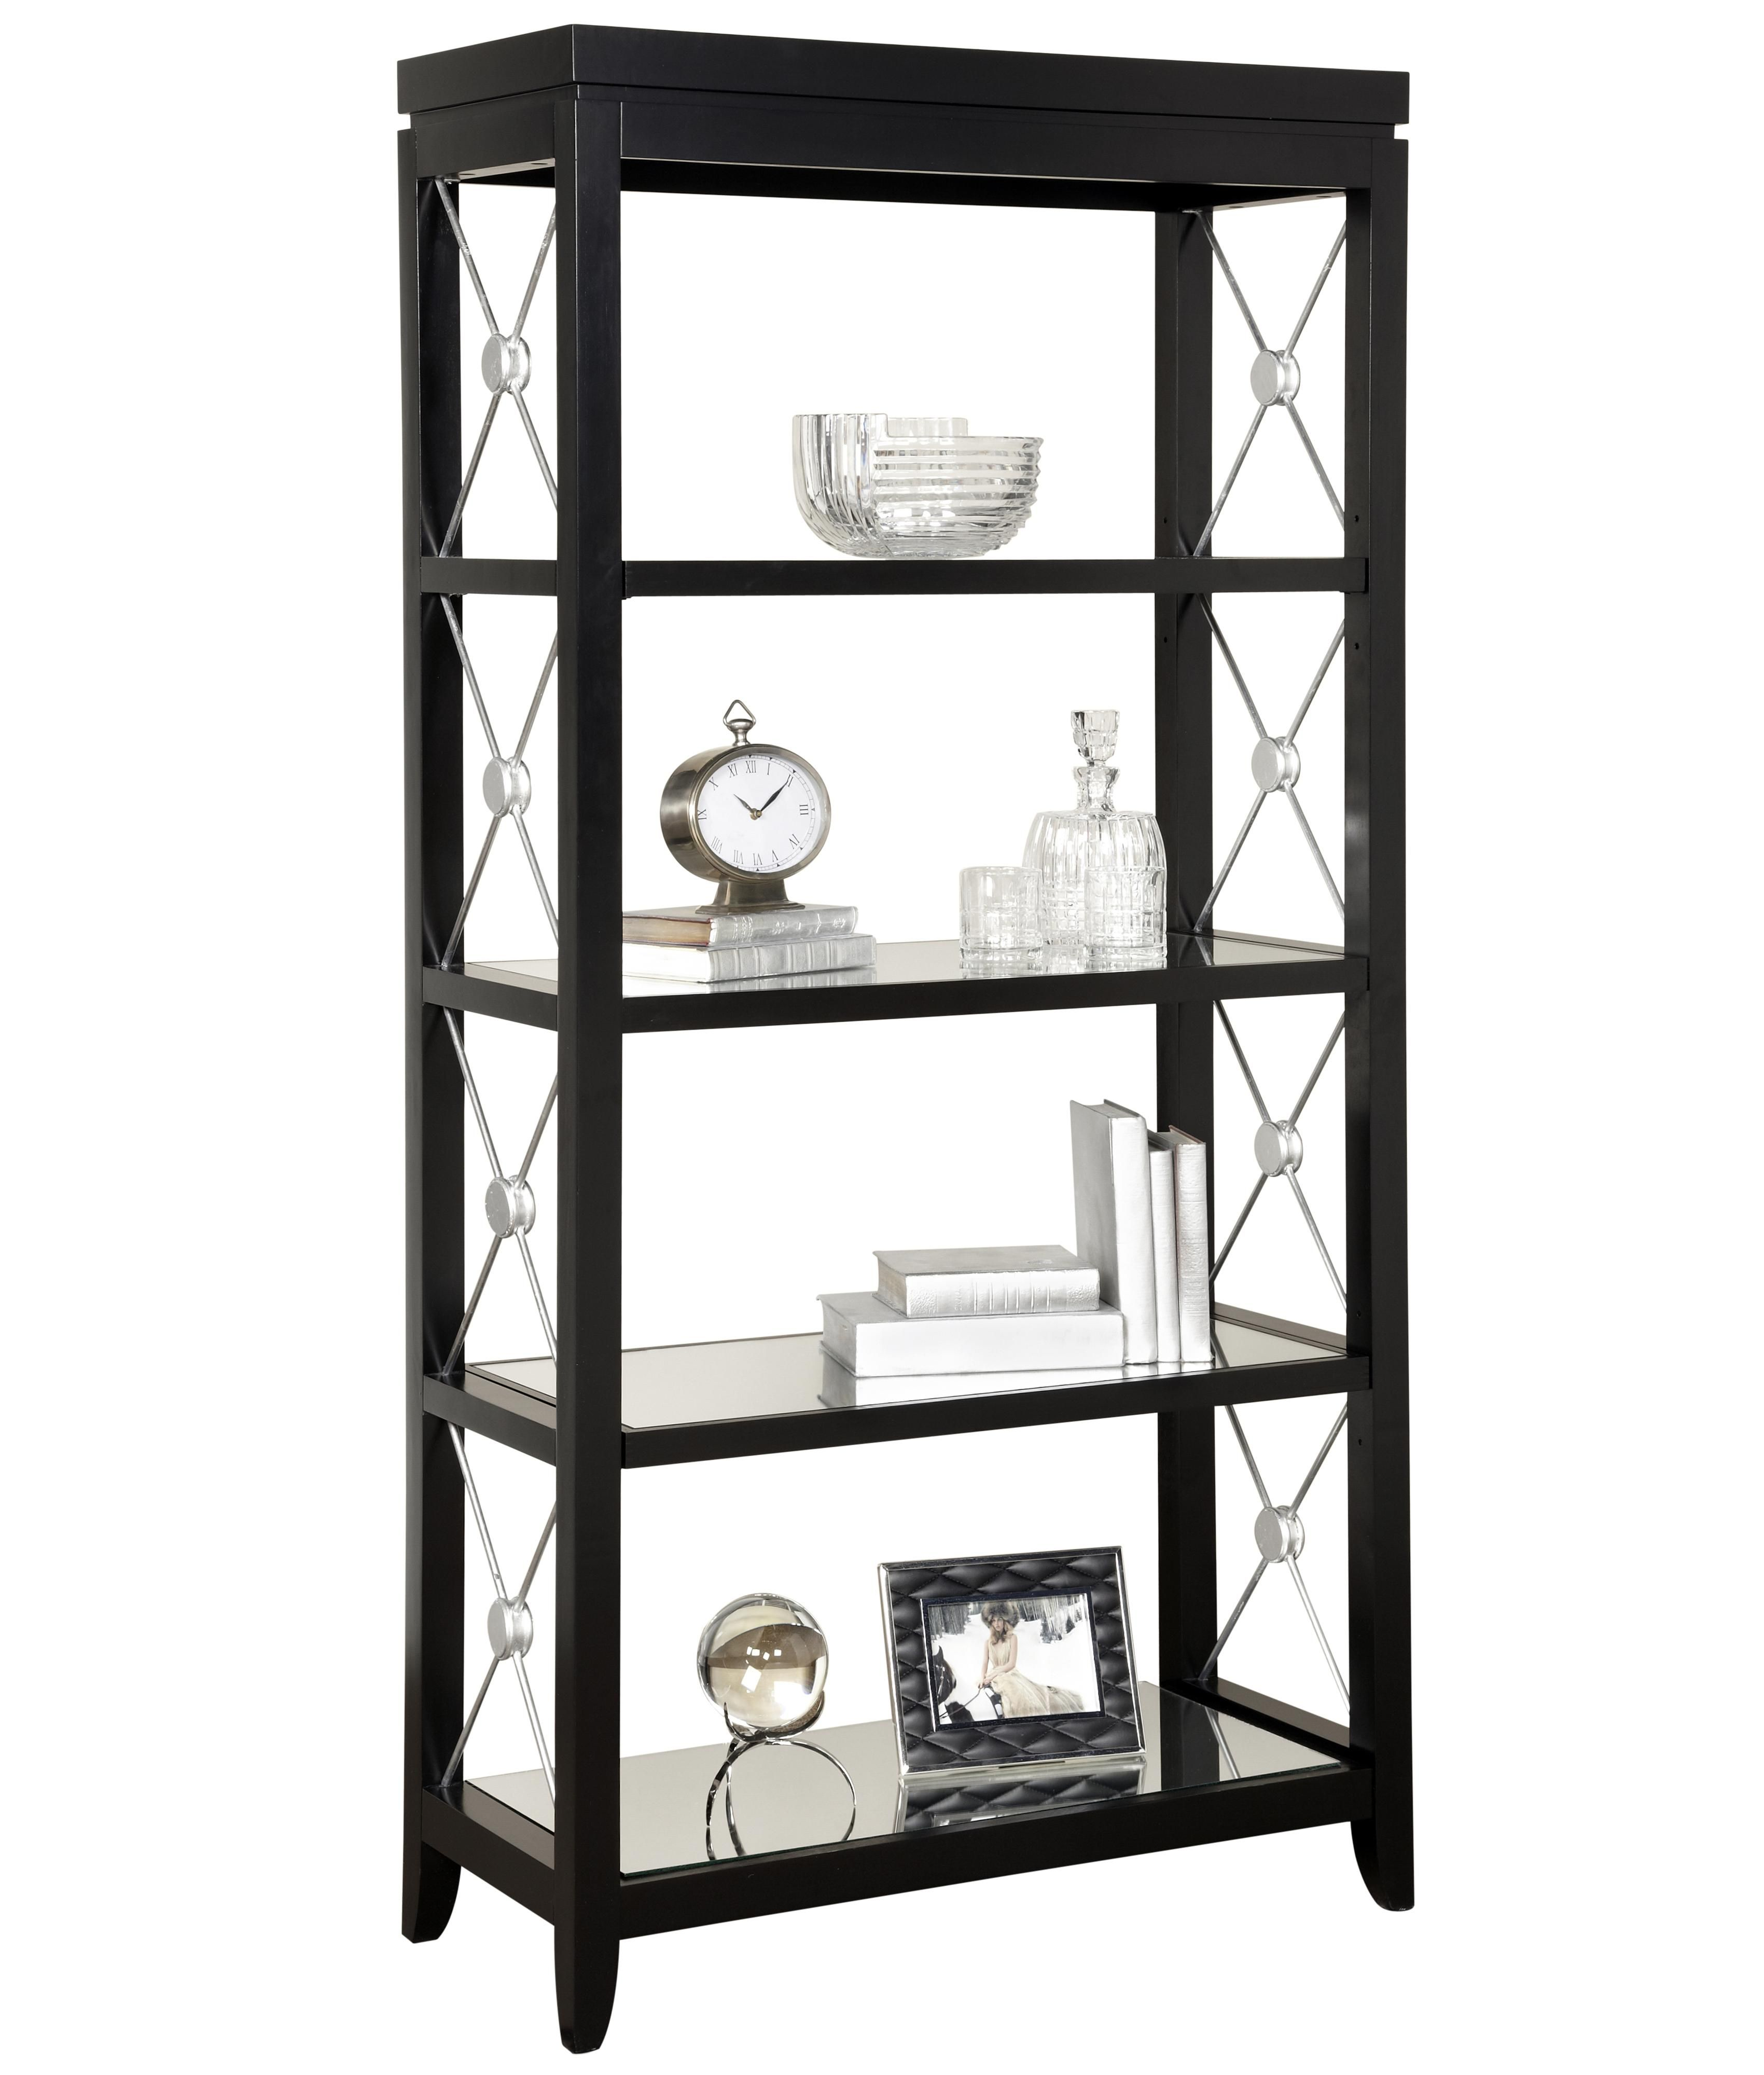 Trenton Finish Etagere with Mirrored Shelves and Decorative Metal X ...